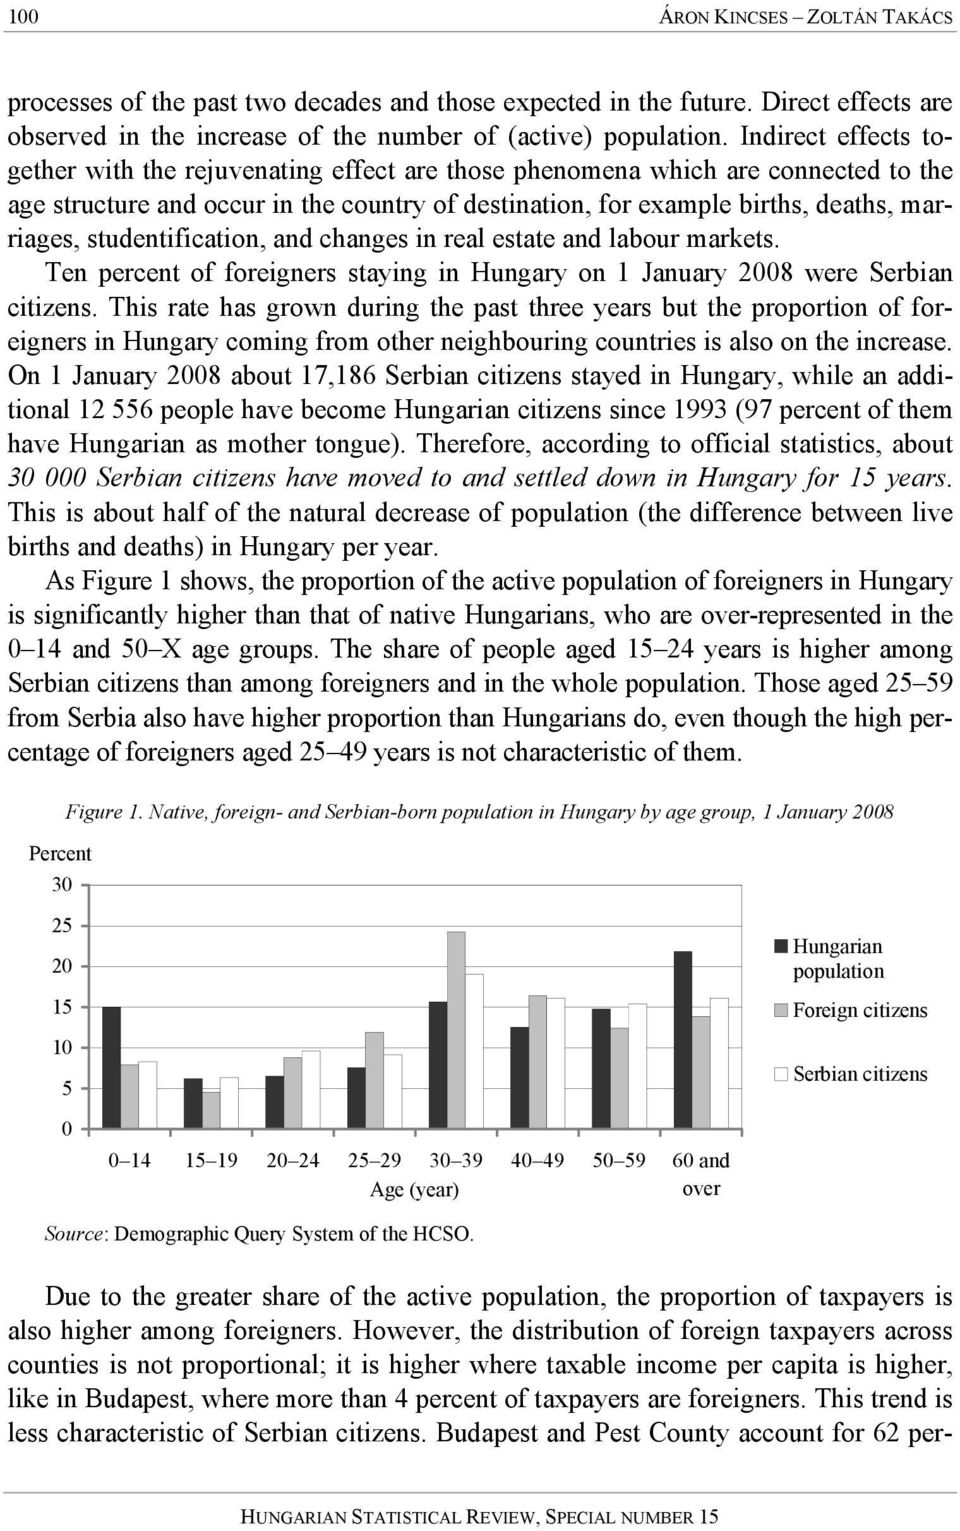 studentification, and changes in real estate and labour markets. Ten percent of foreigners staying in Hungary on 1 January 2008 were Serbian citizens.